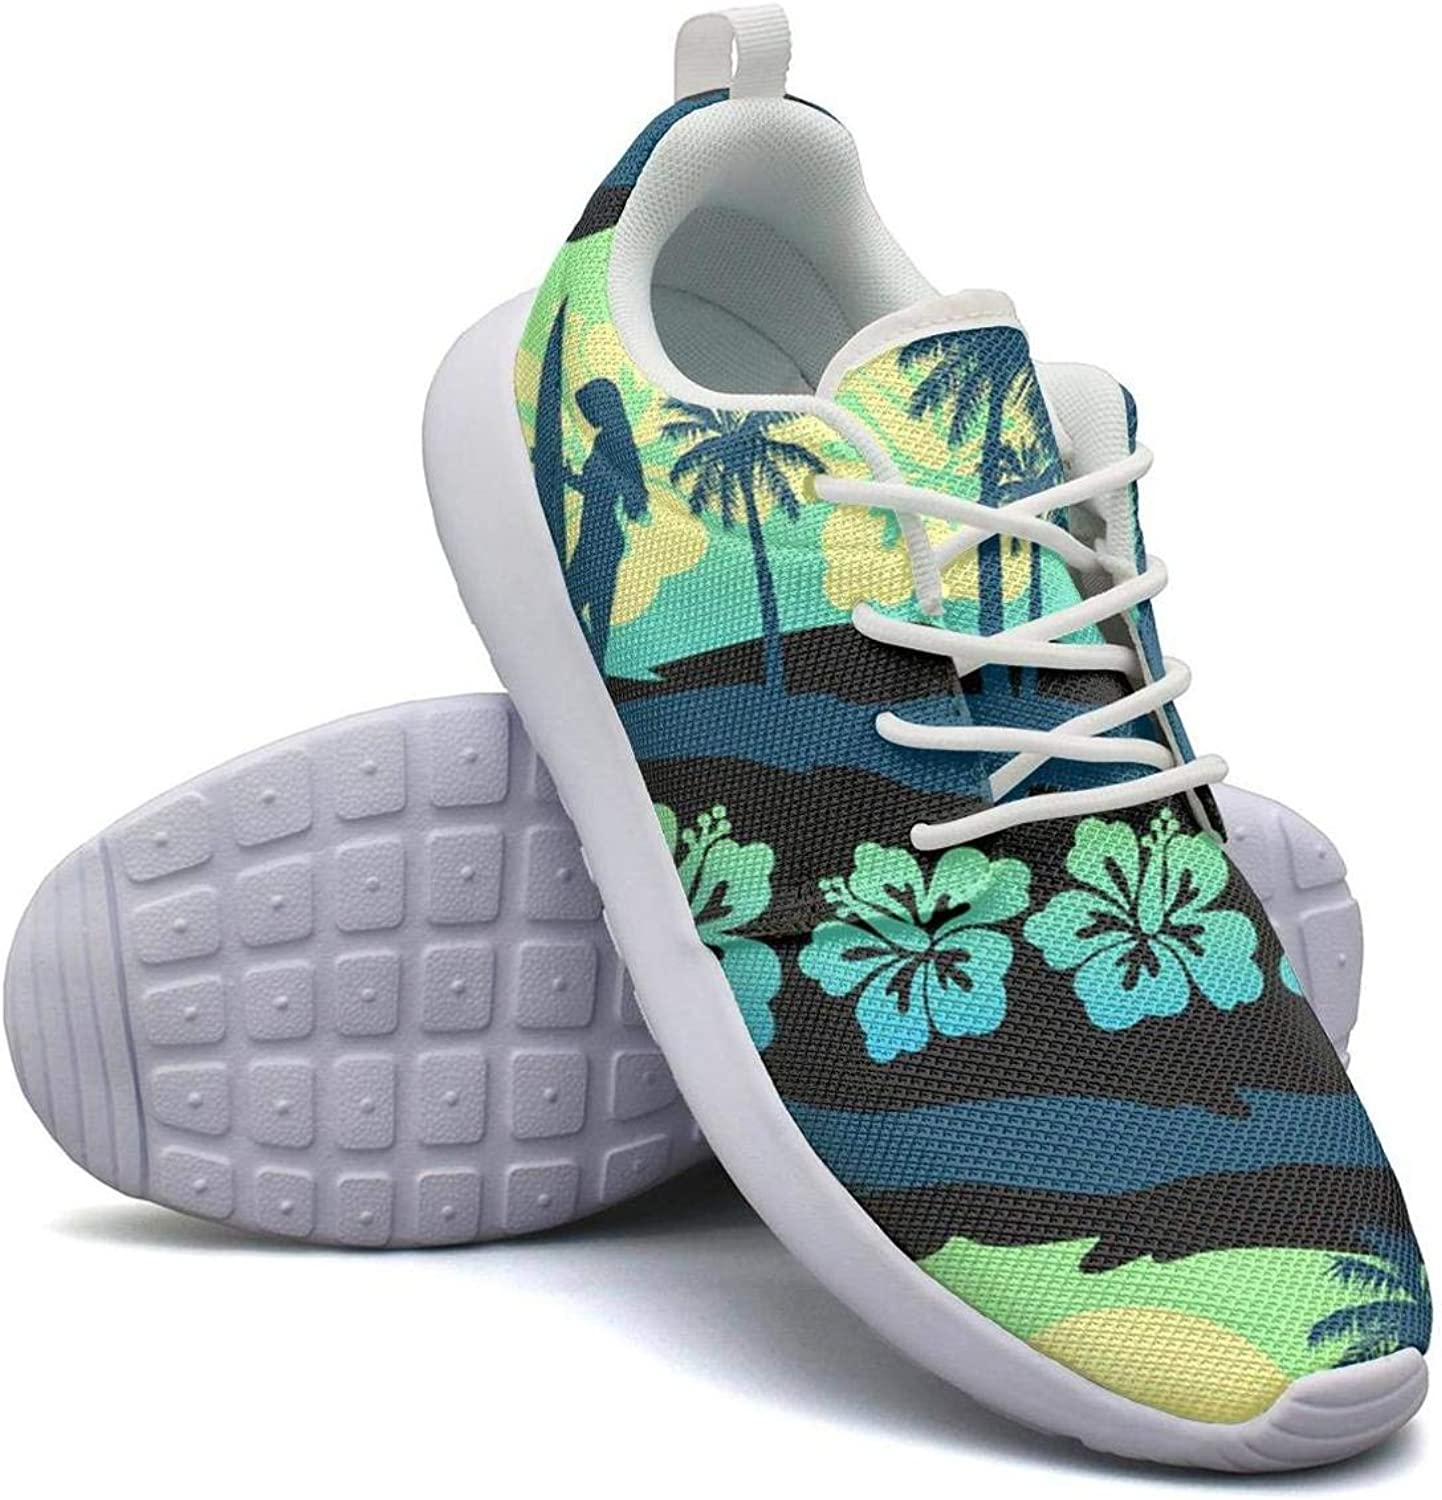 CHALi99 Fashion Female Youth Lightweight Mesh shoes Beach Sunrise Palm Leaves Loafers Athletic Rubber Sole